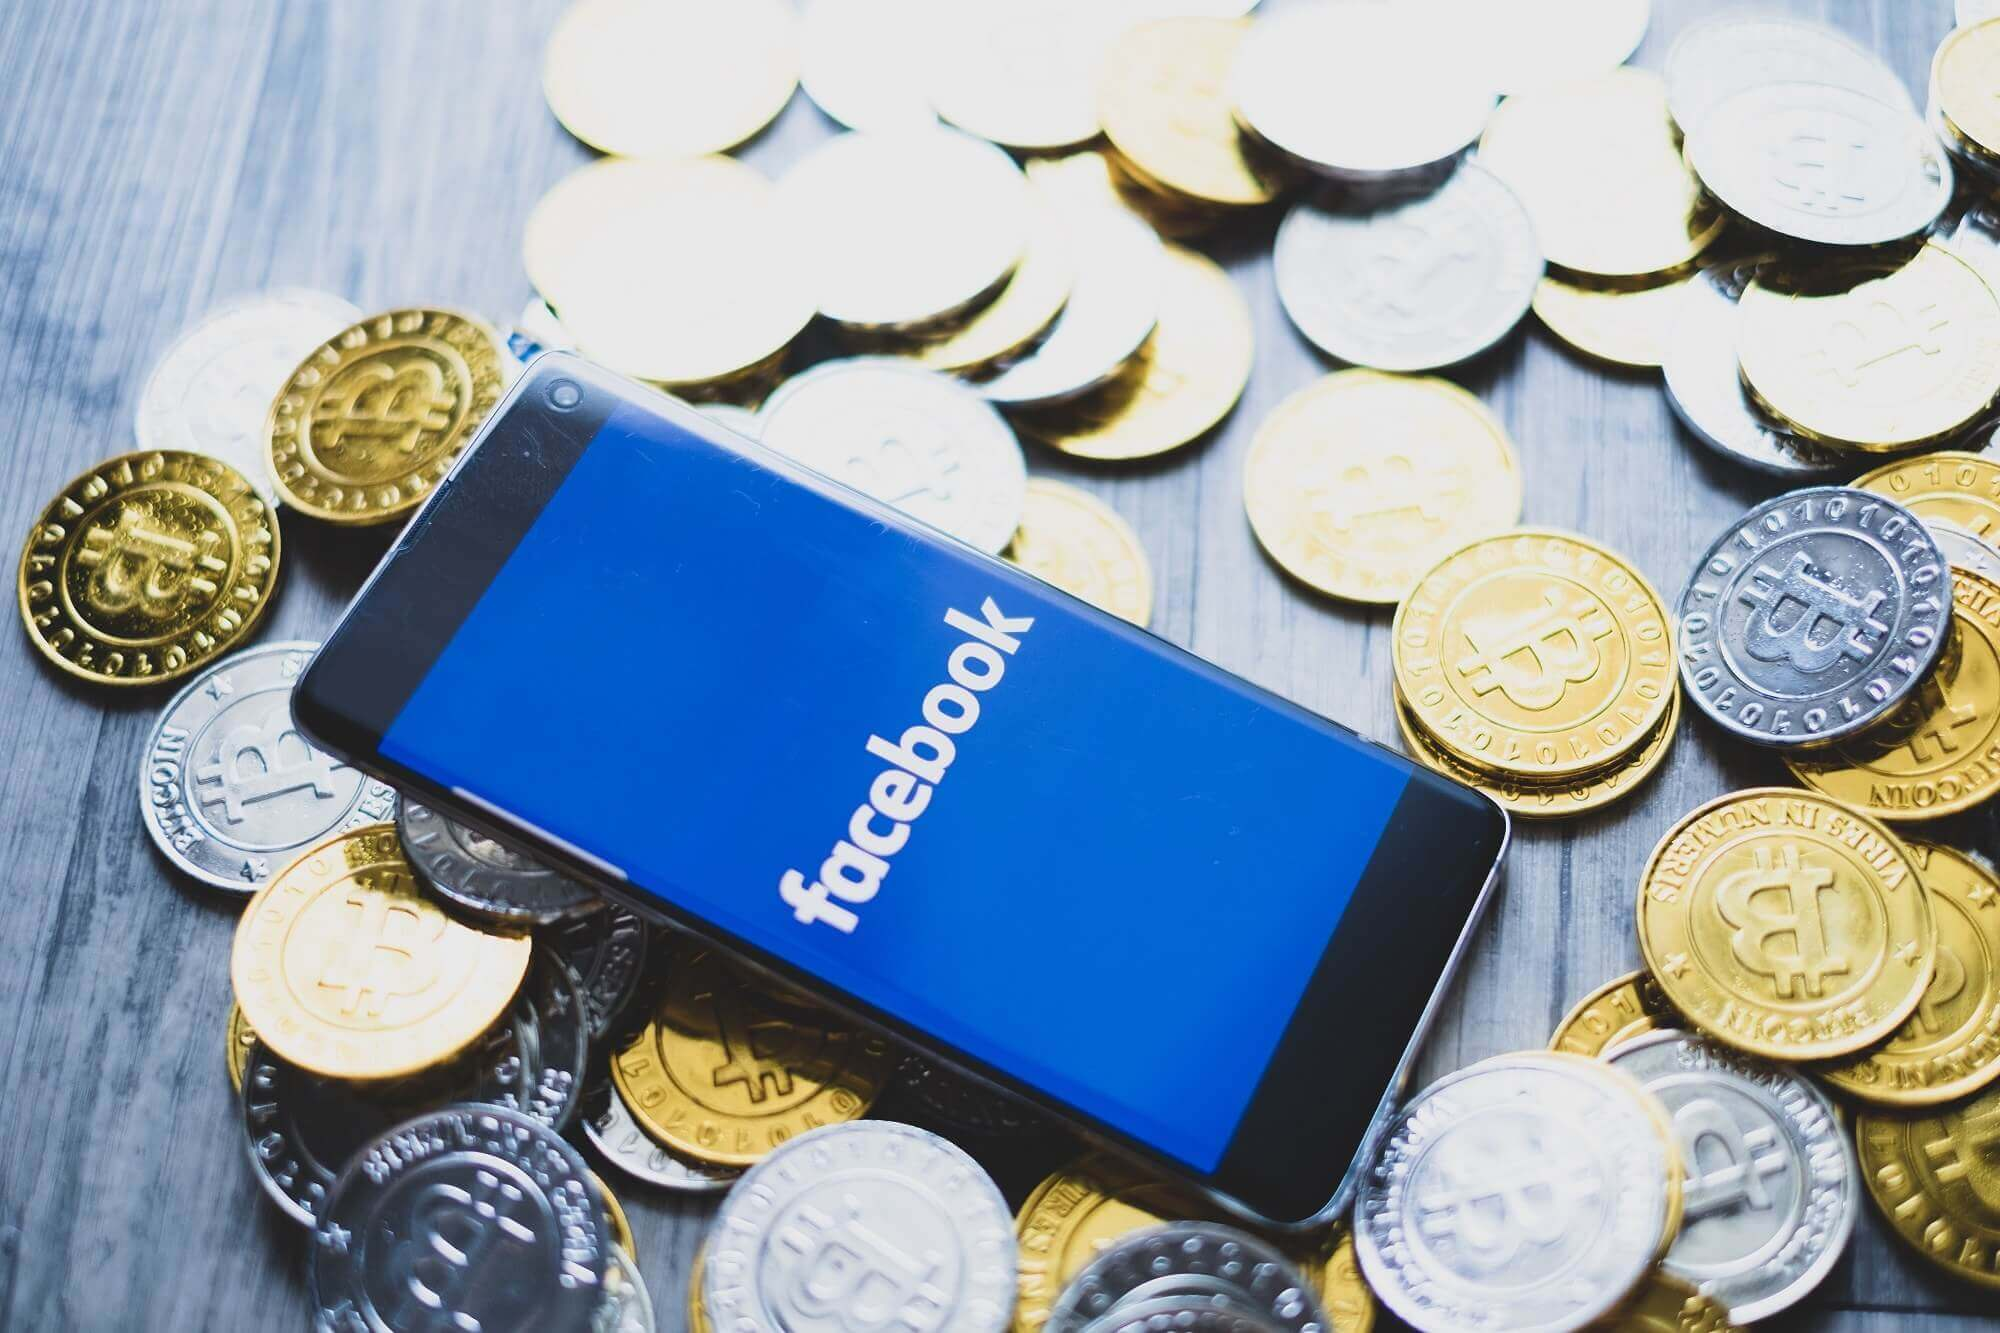 Facebook to appear before Senate Banking Committee regarding Libra cryptocurrency